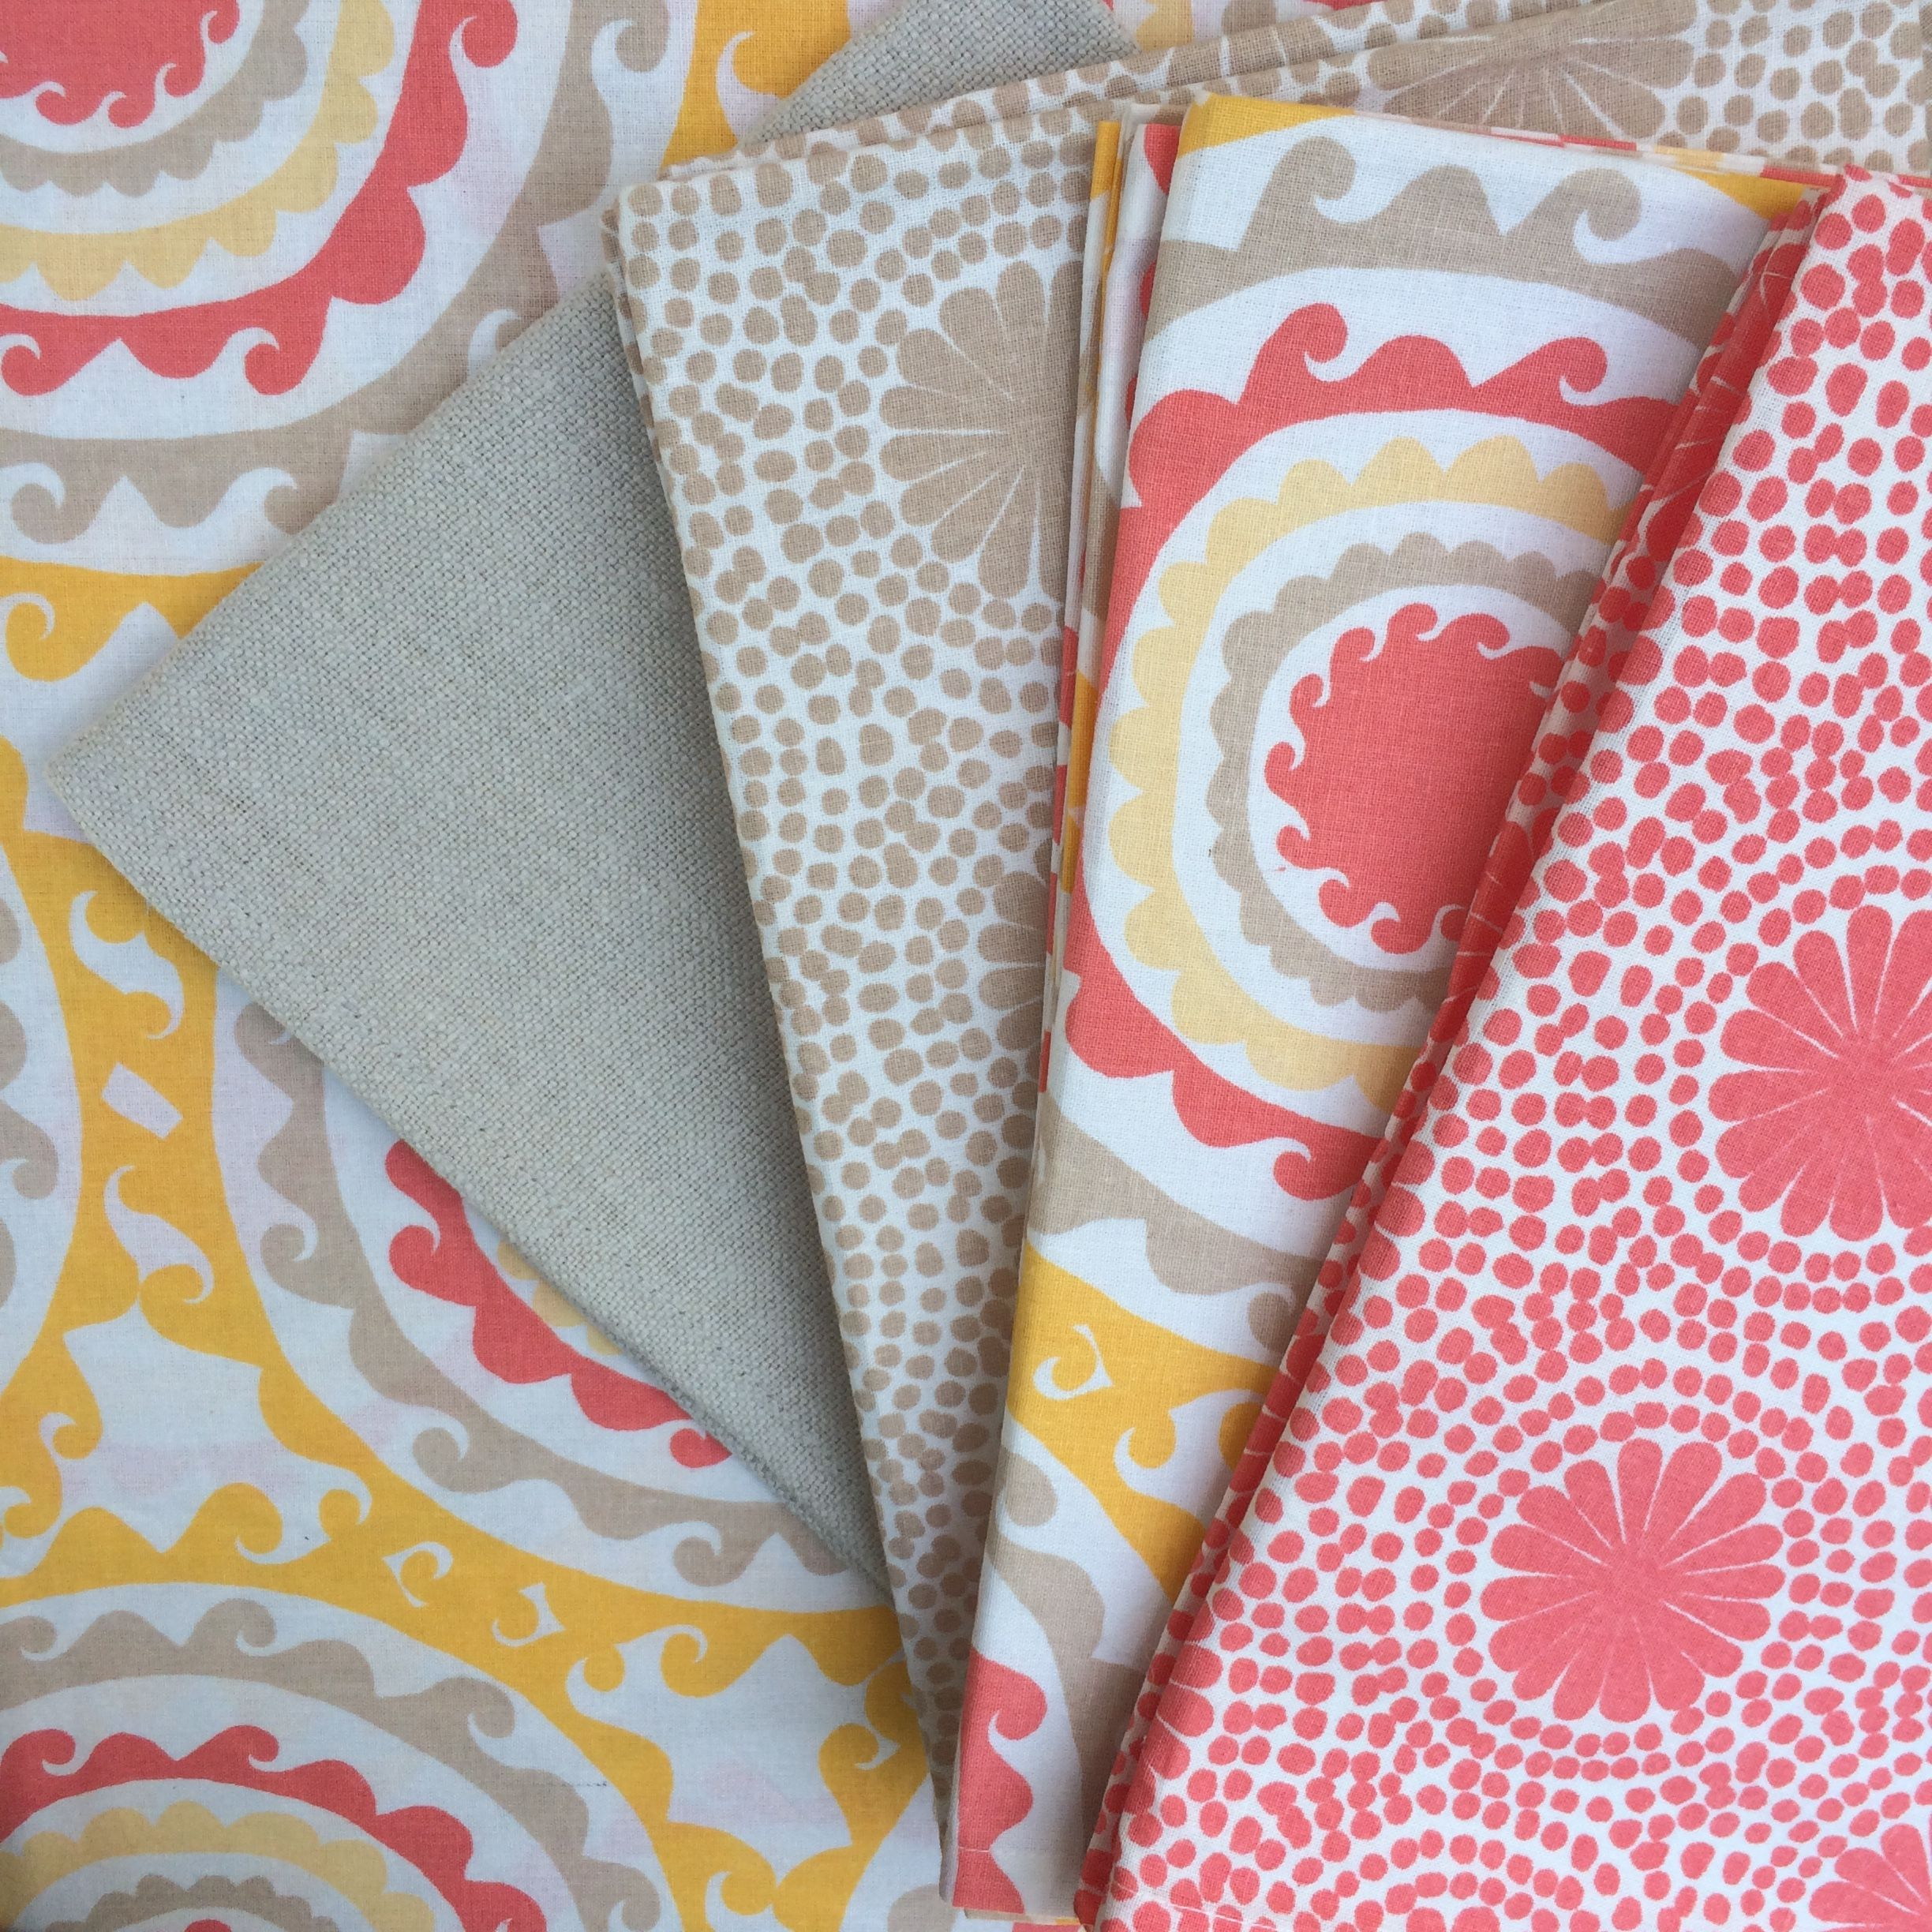 feeling a little tropical, take a look at these happy napkins to rustle the palms. available in three patterns  - 'caribe', apricot...'archer', apricot/yelow...'oyster', natural.  sold in sets of four. machine washable in a cotton blend. by john robshaw.